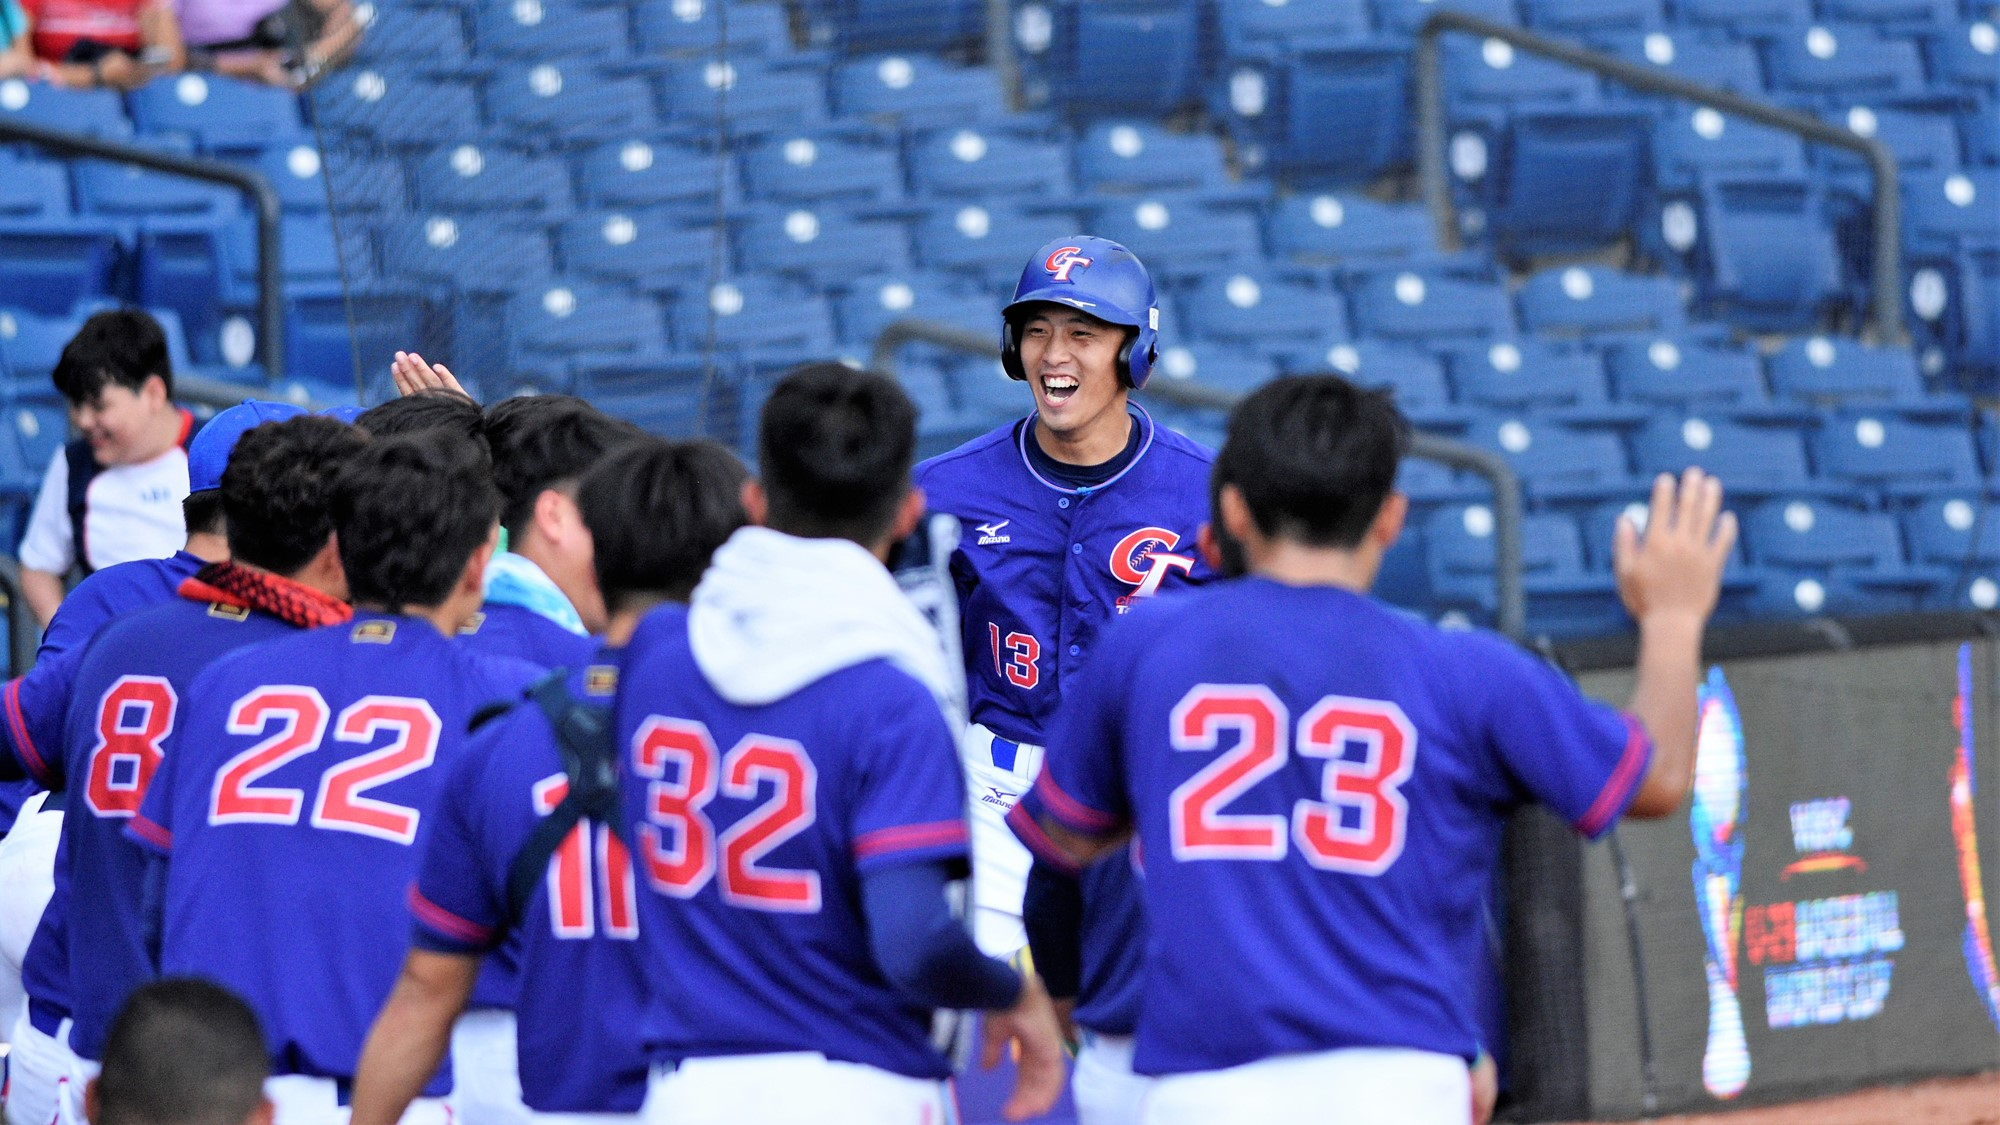 Tai Yun Chen tied the game in the top of the seventh with a solo home run